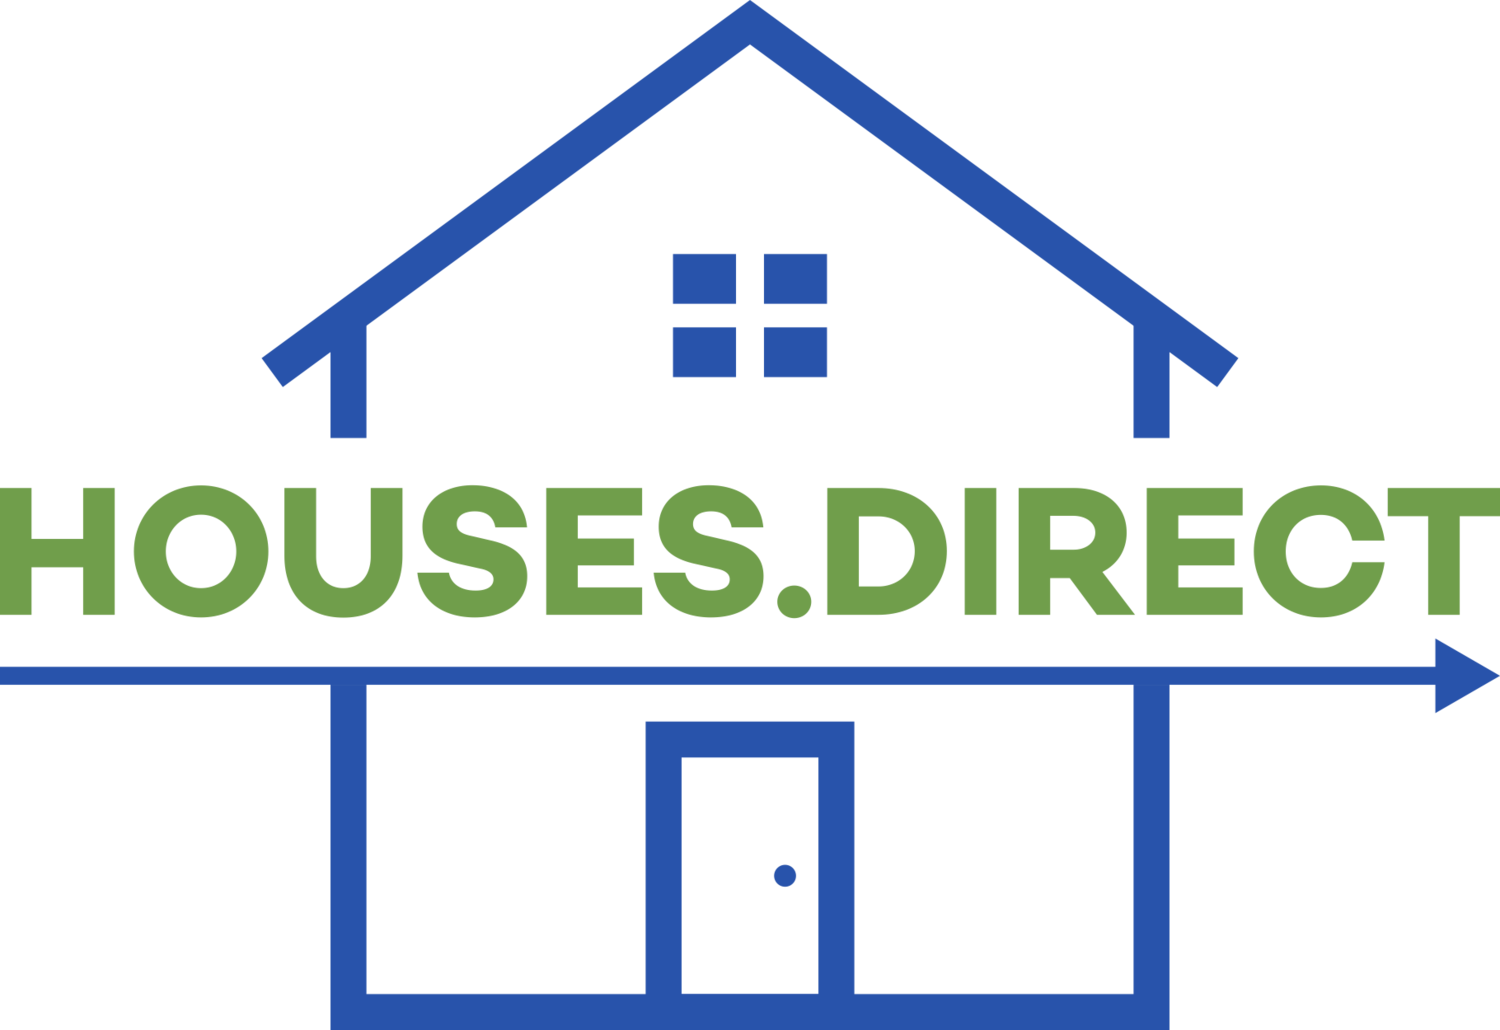 Houses.Direct